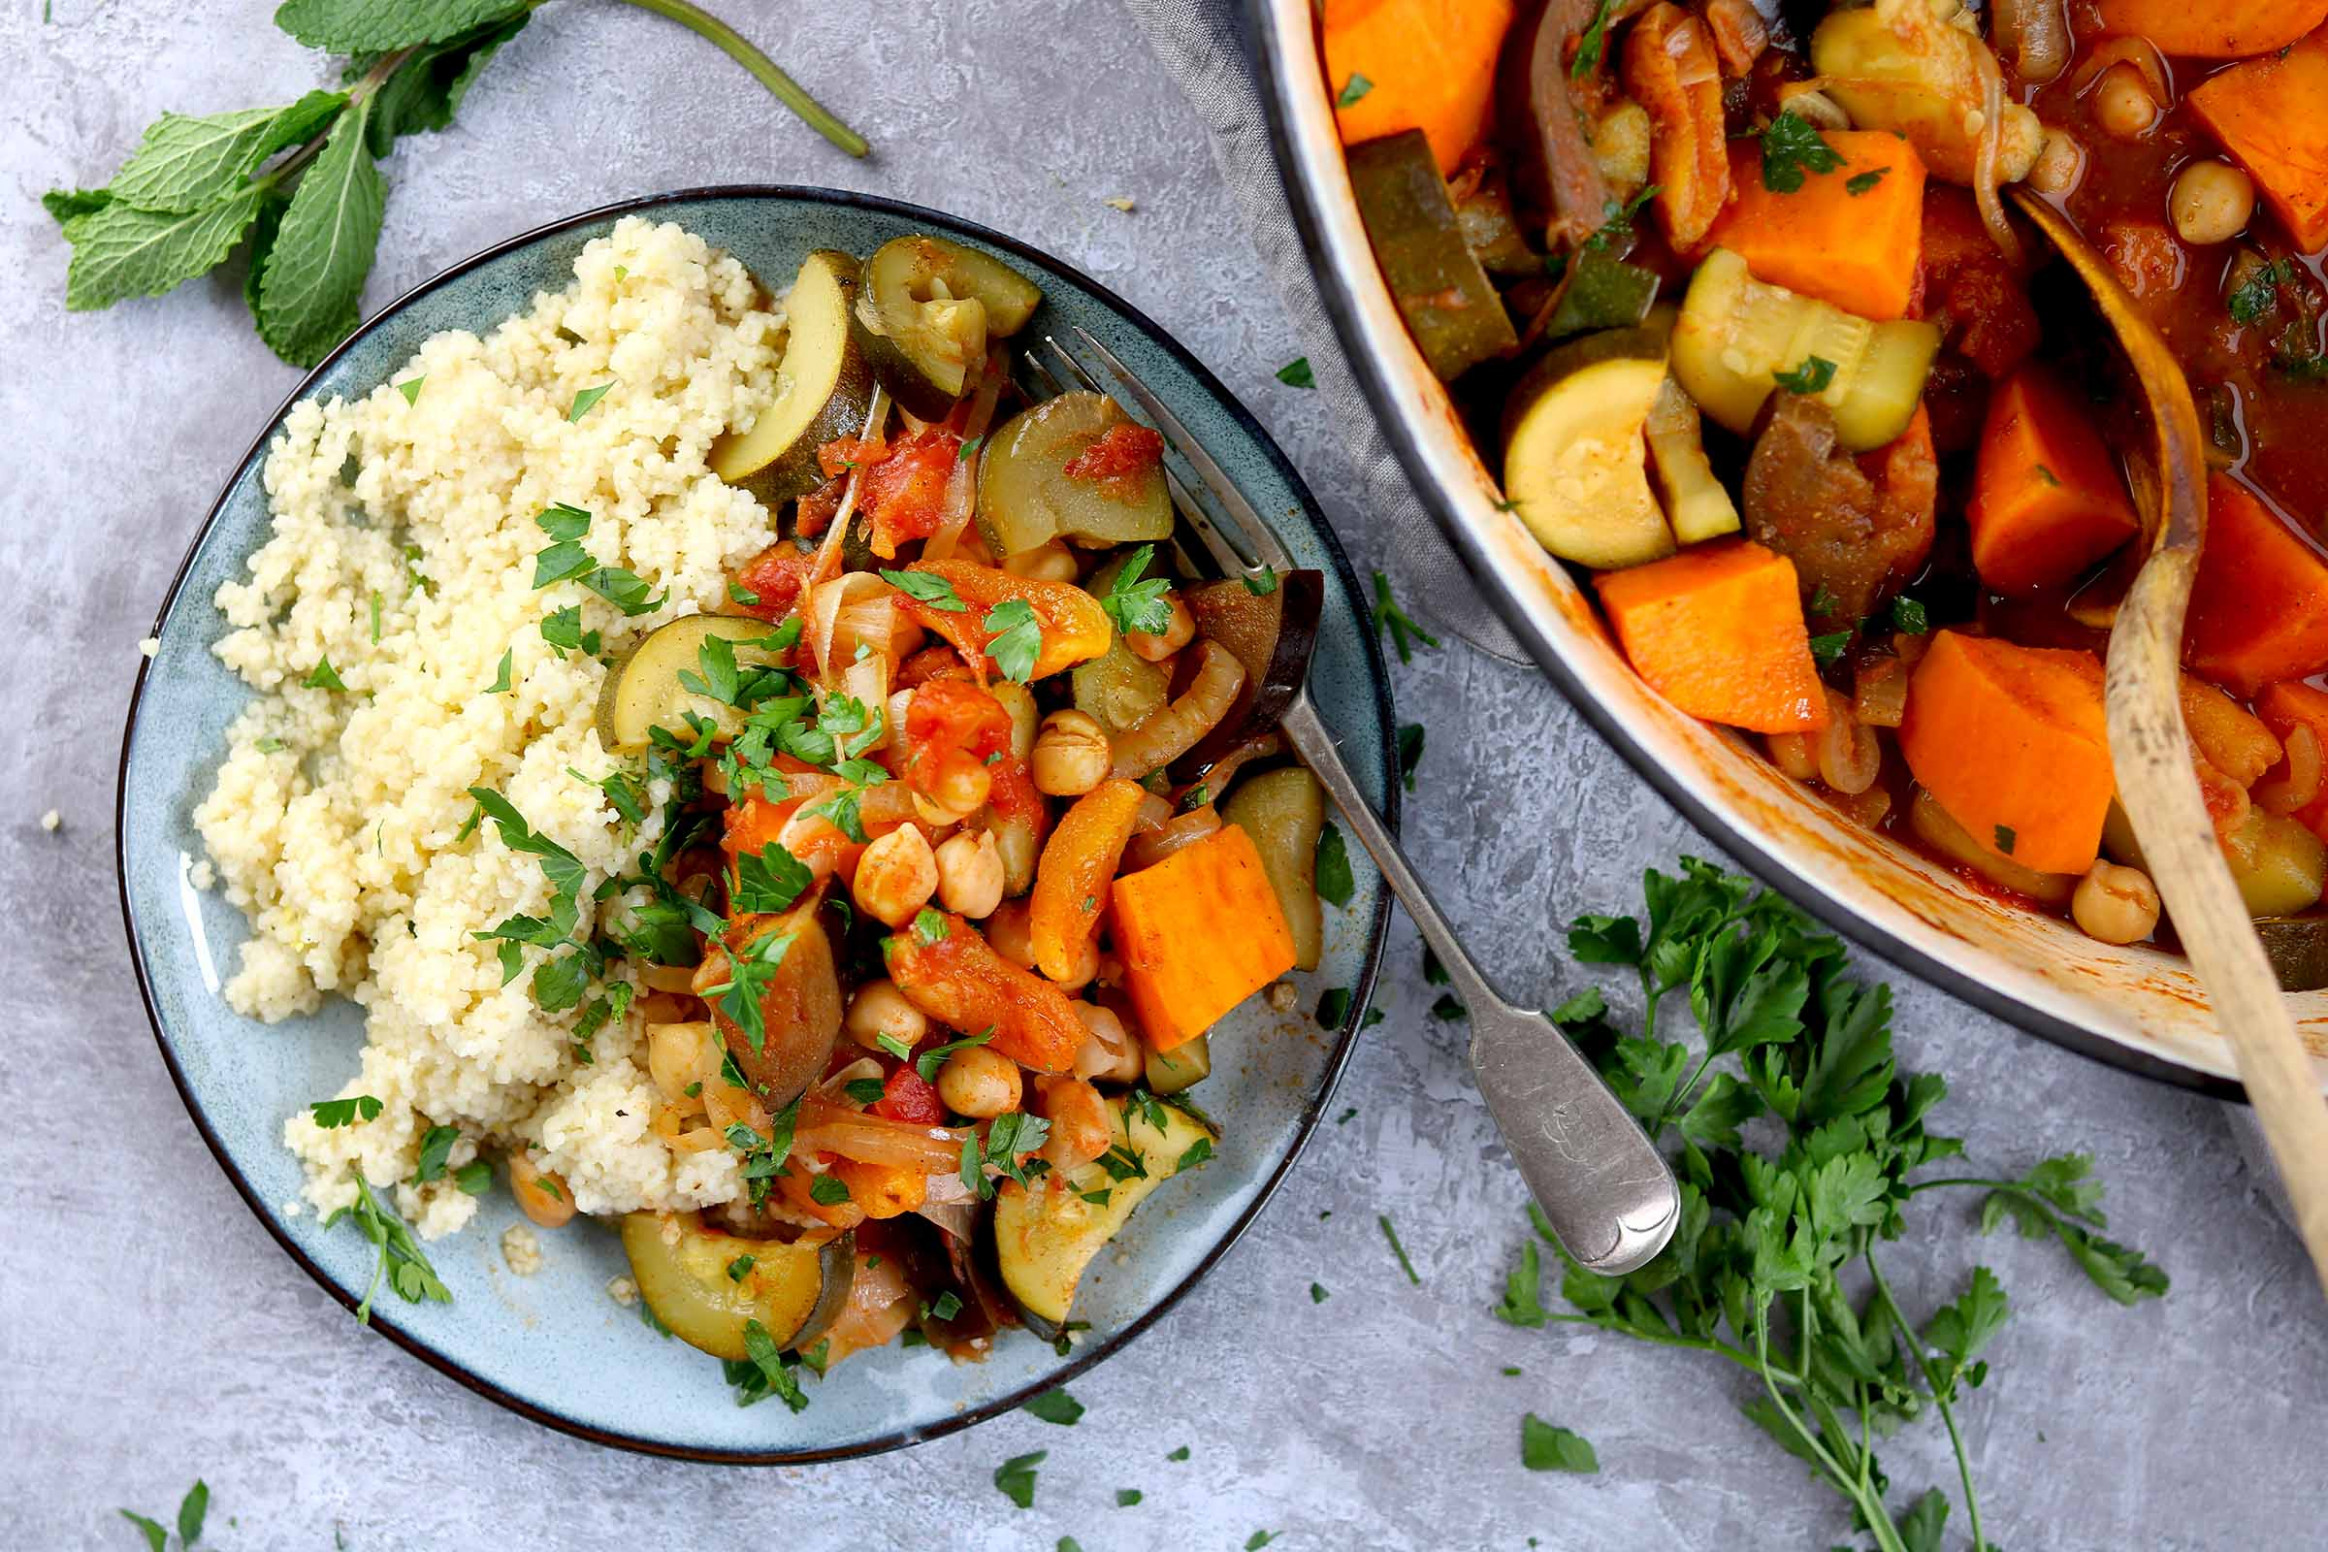 Spicy Moroccan Vegetable Tagine - The Last Food Blog - recipes vegetarian tagine